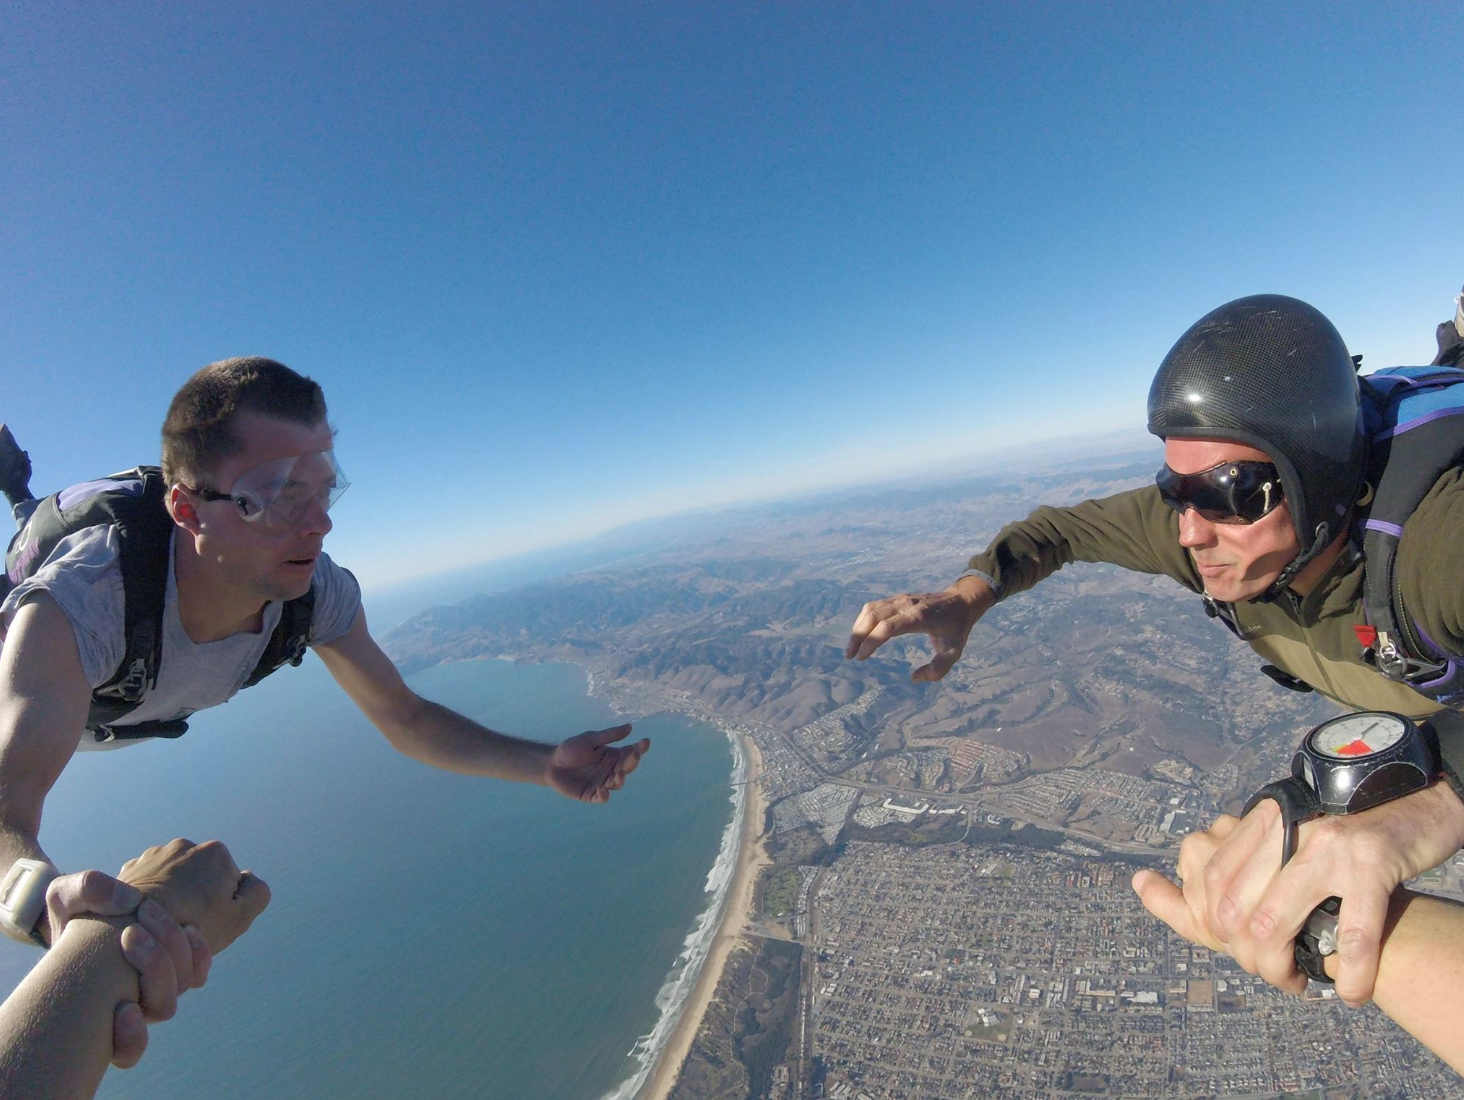 https://www.facebook.com/skydivepismobeach/photos/a.205353369483433/1296538173698275/?type=3&theater